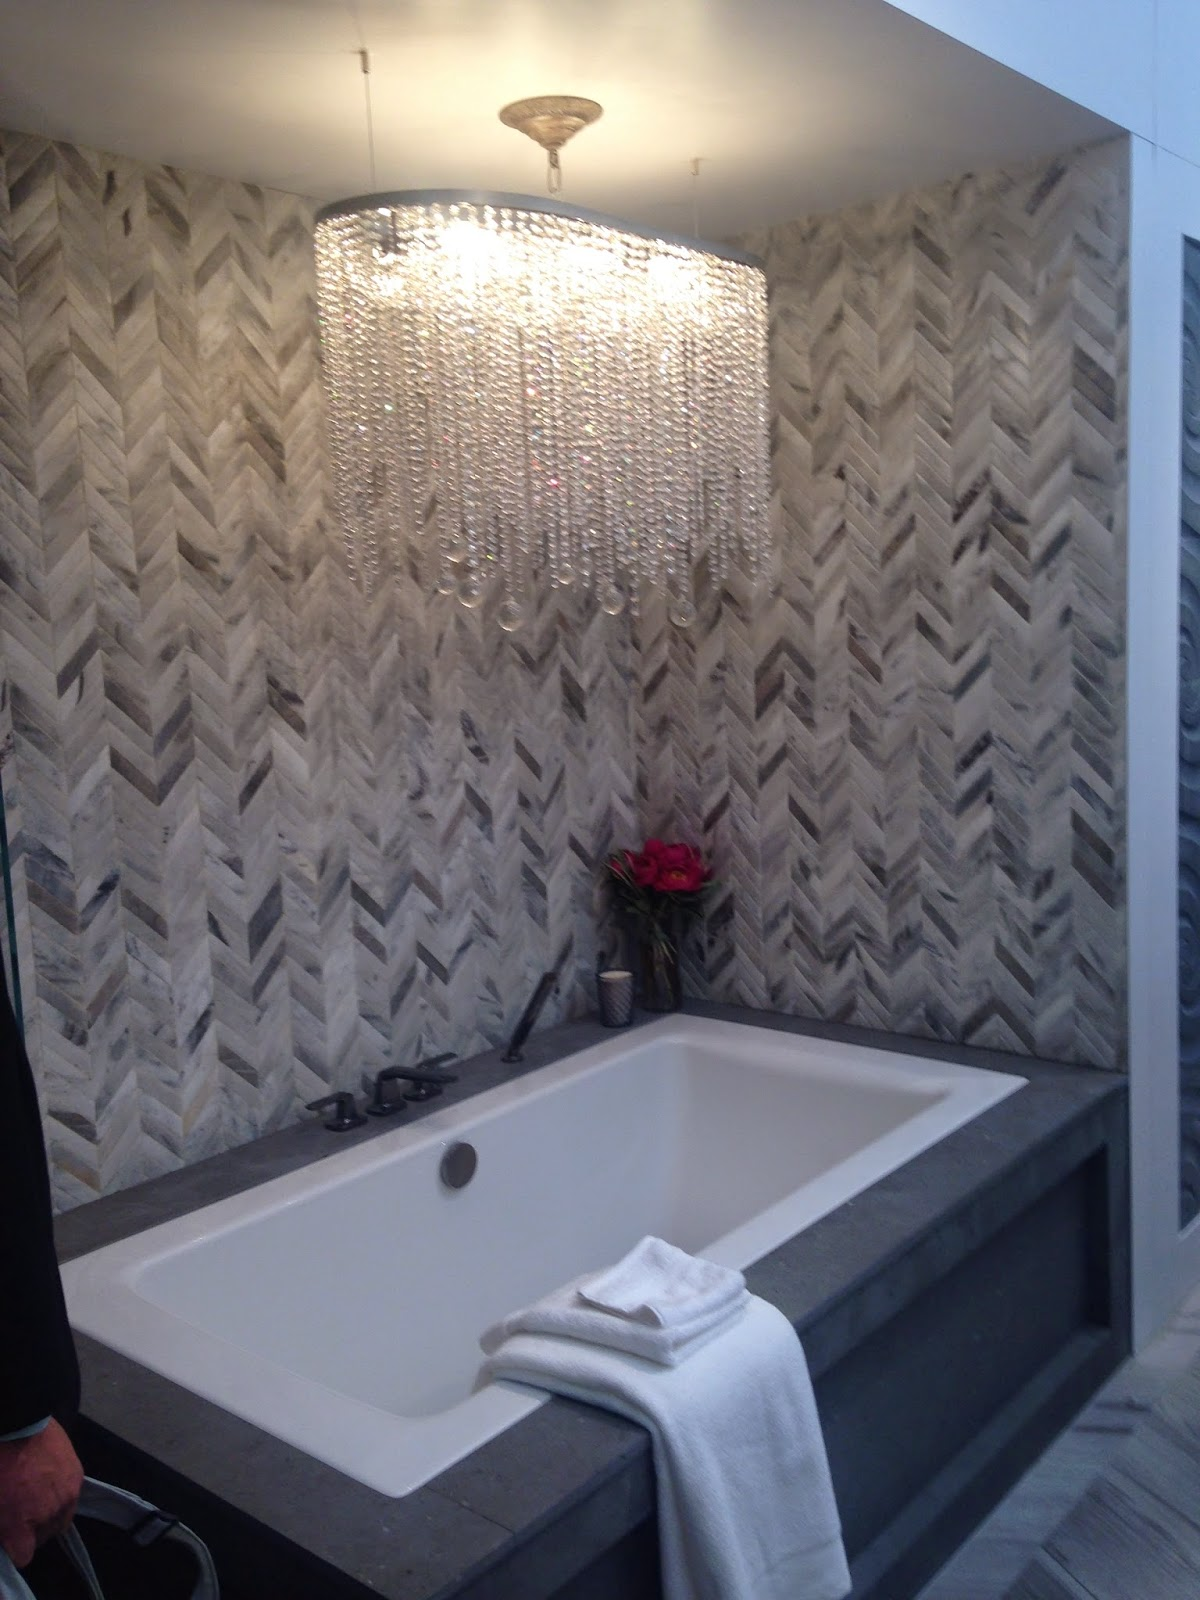 TheBuilderFix: The Builders show never disappoints with tubs! This ...